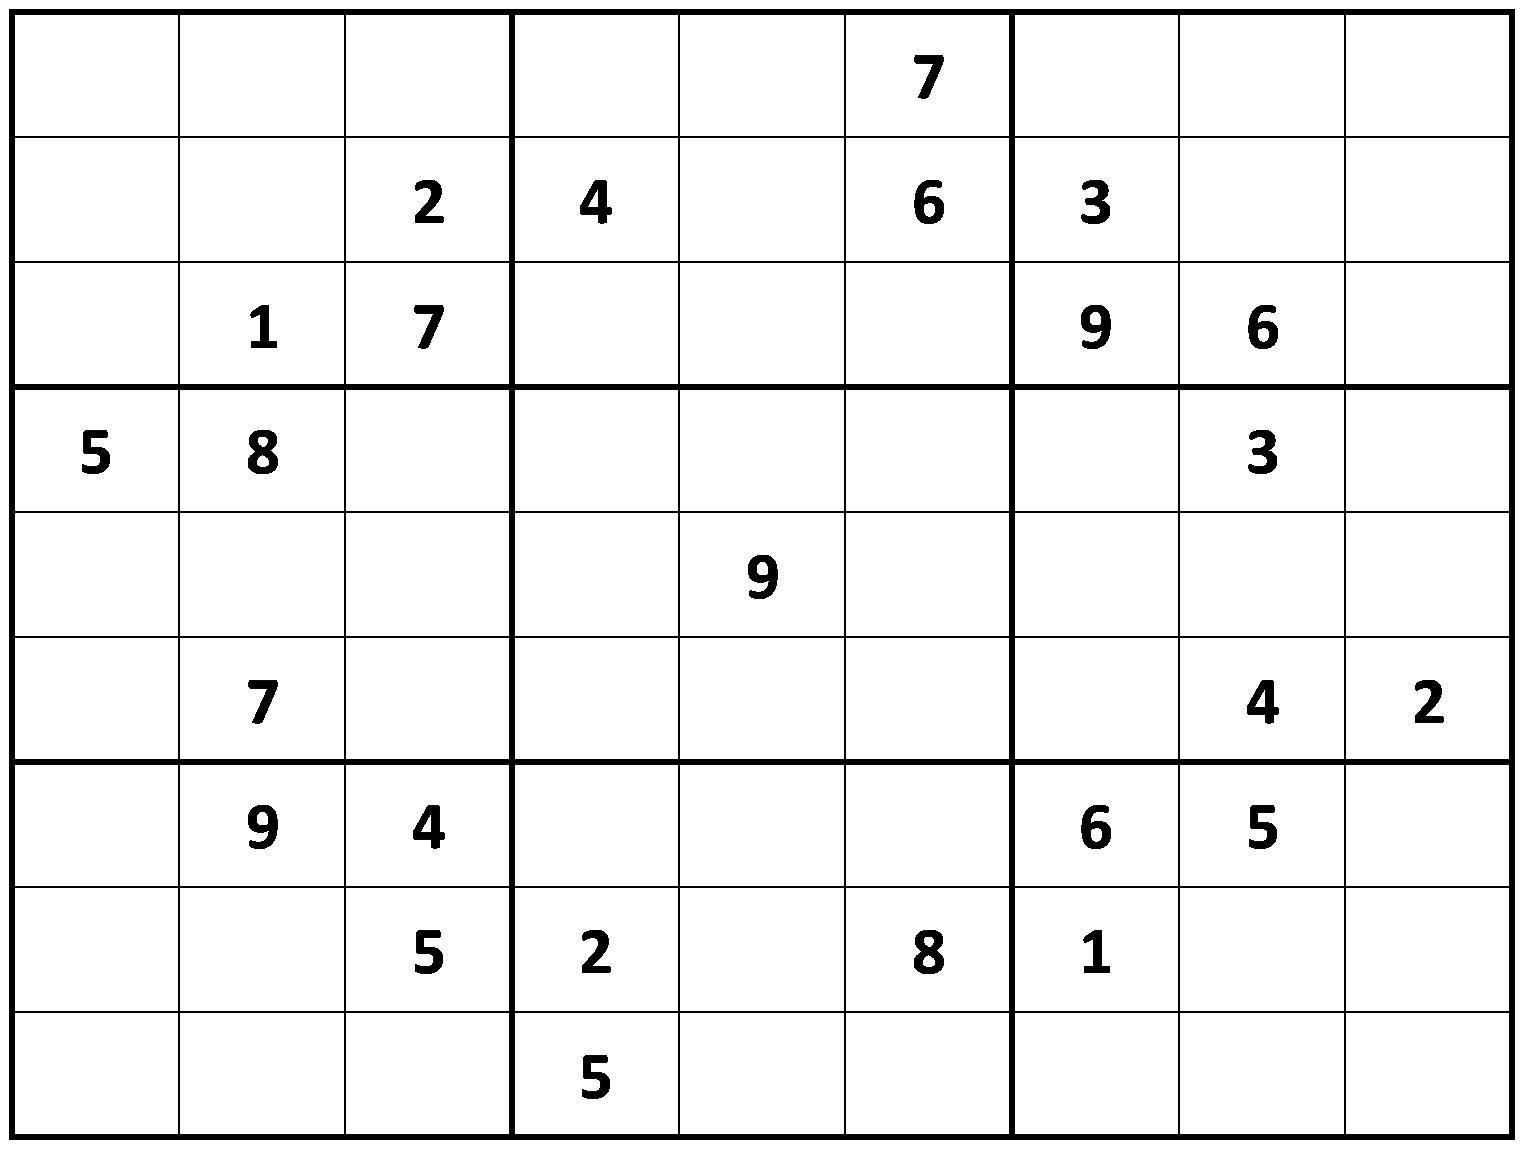 It's just a photo of Remarkable Daily Sudoku Printable